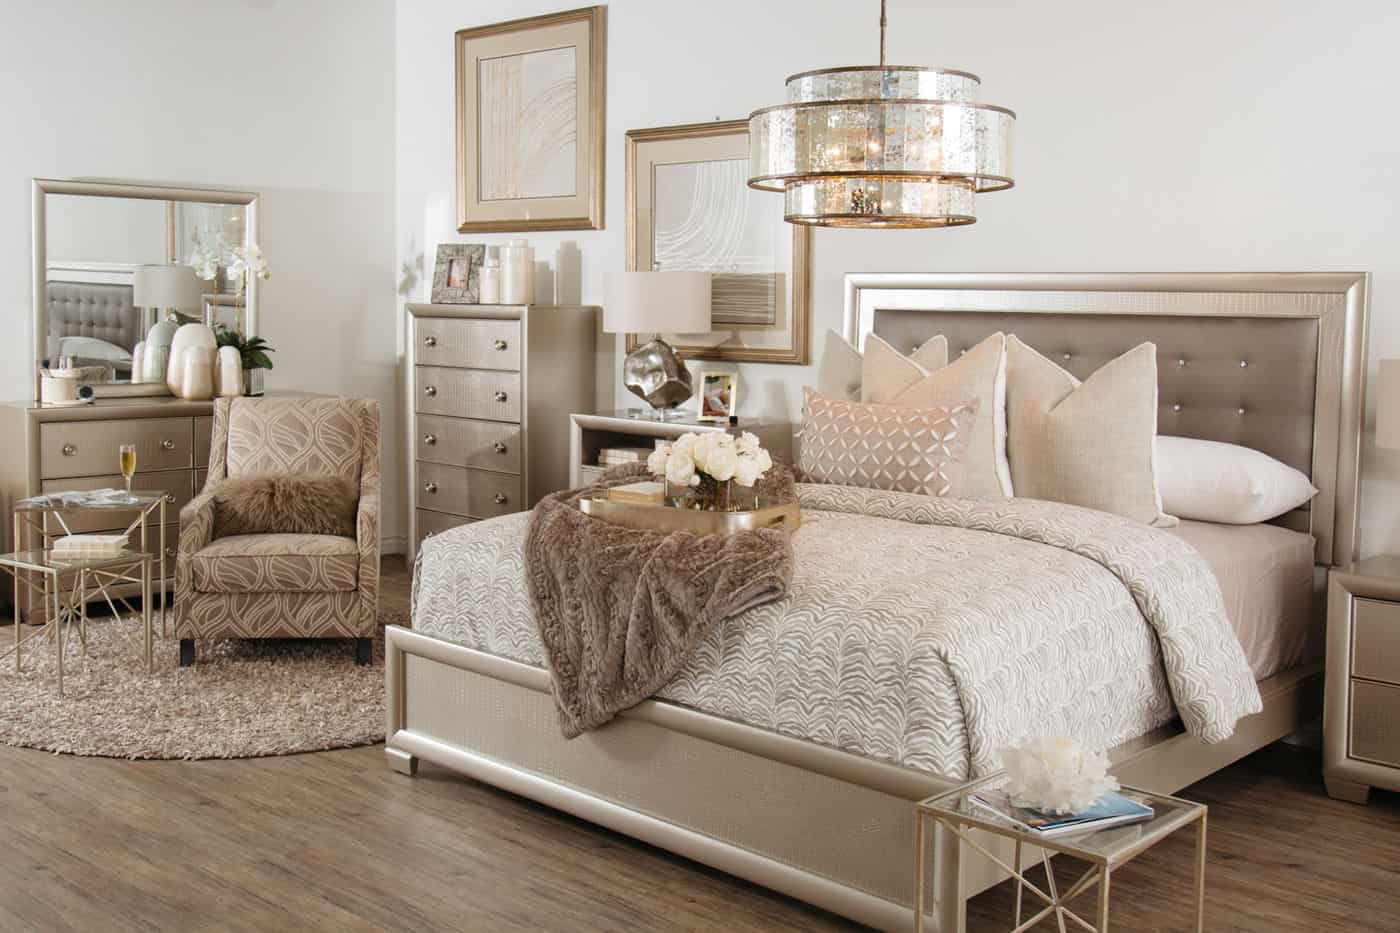 textured bedroom 2 12 Ways To Create A Cozy Room For Fall